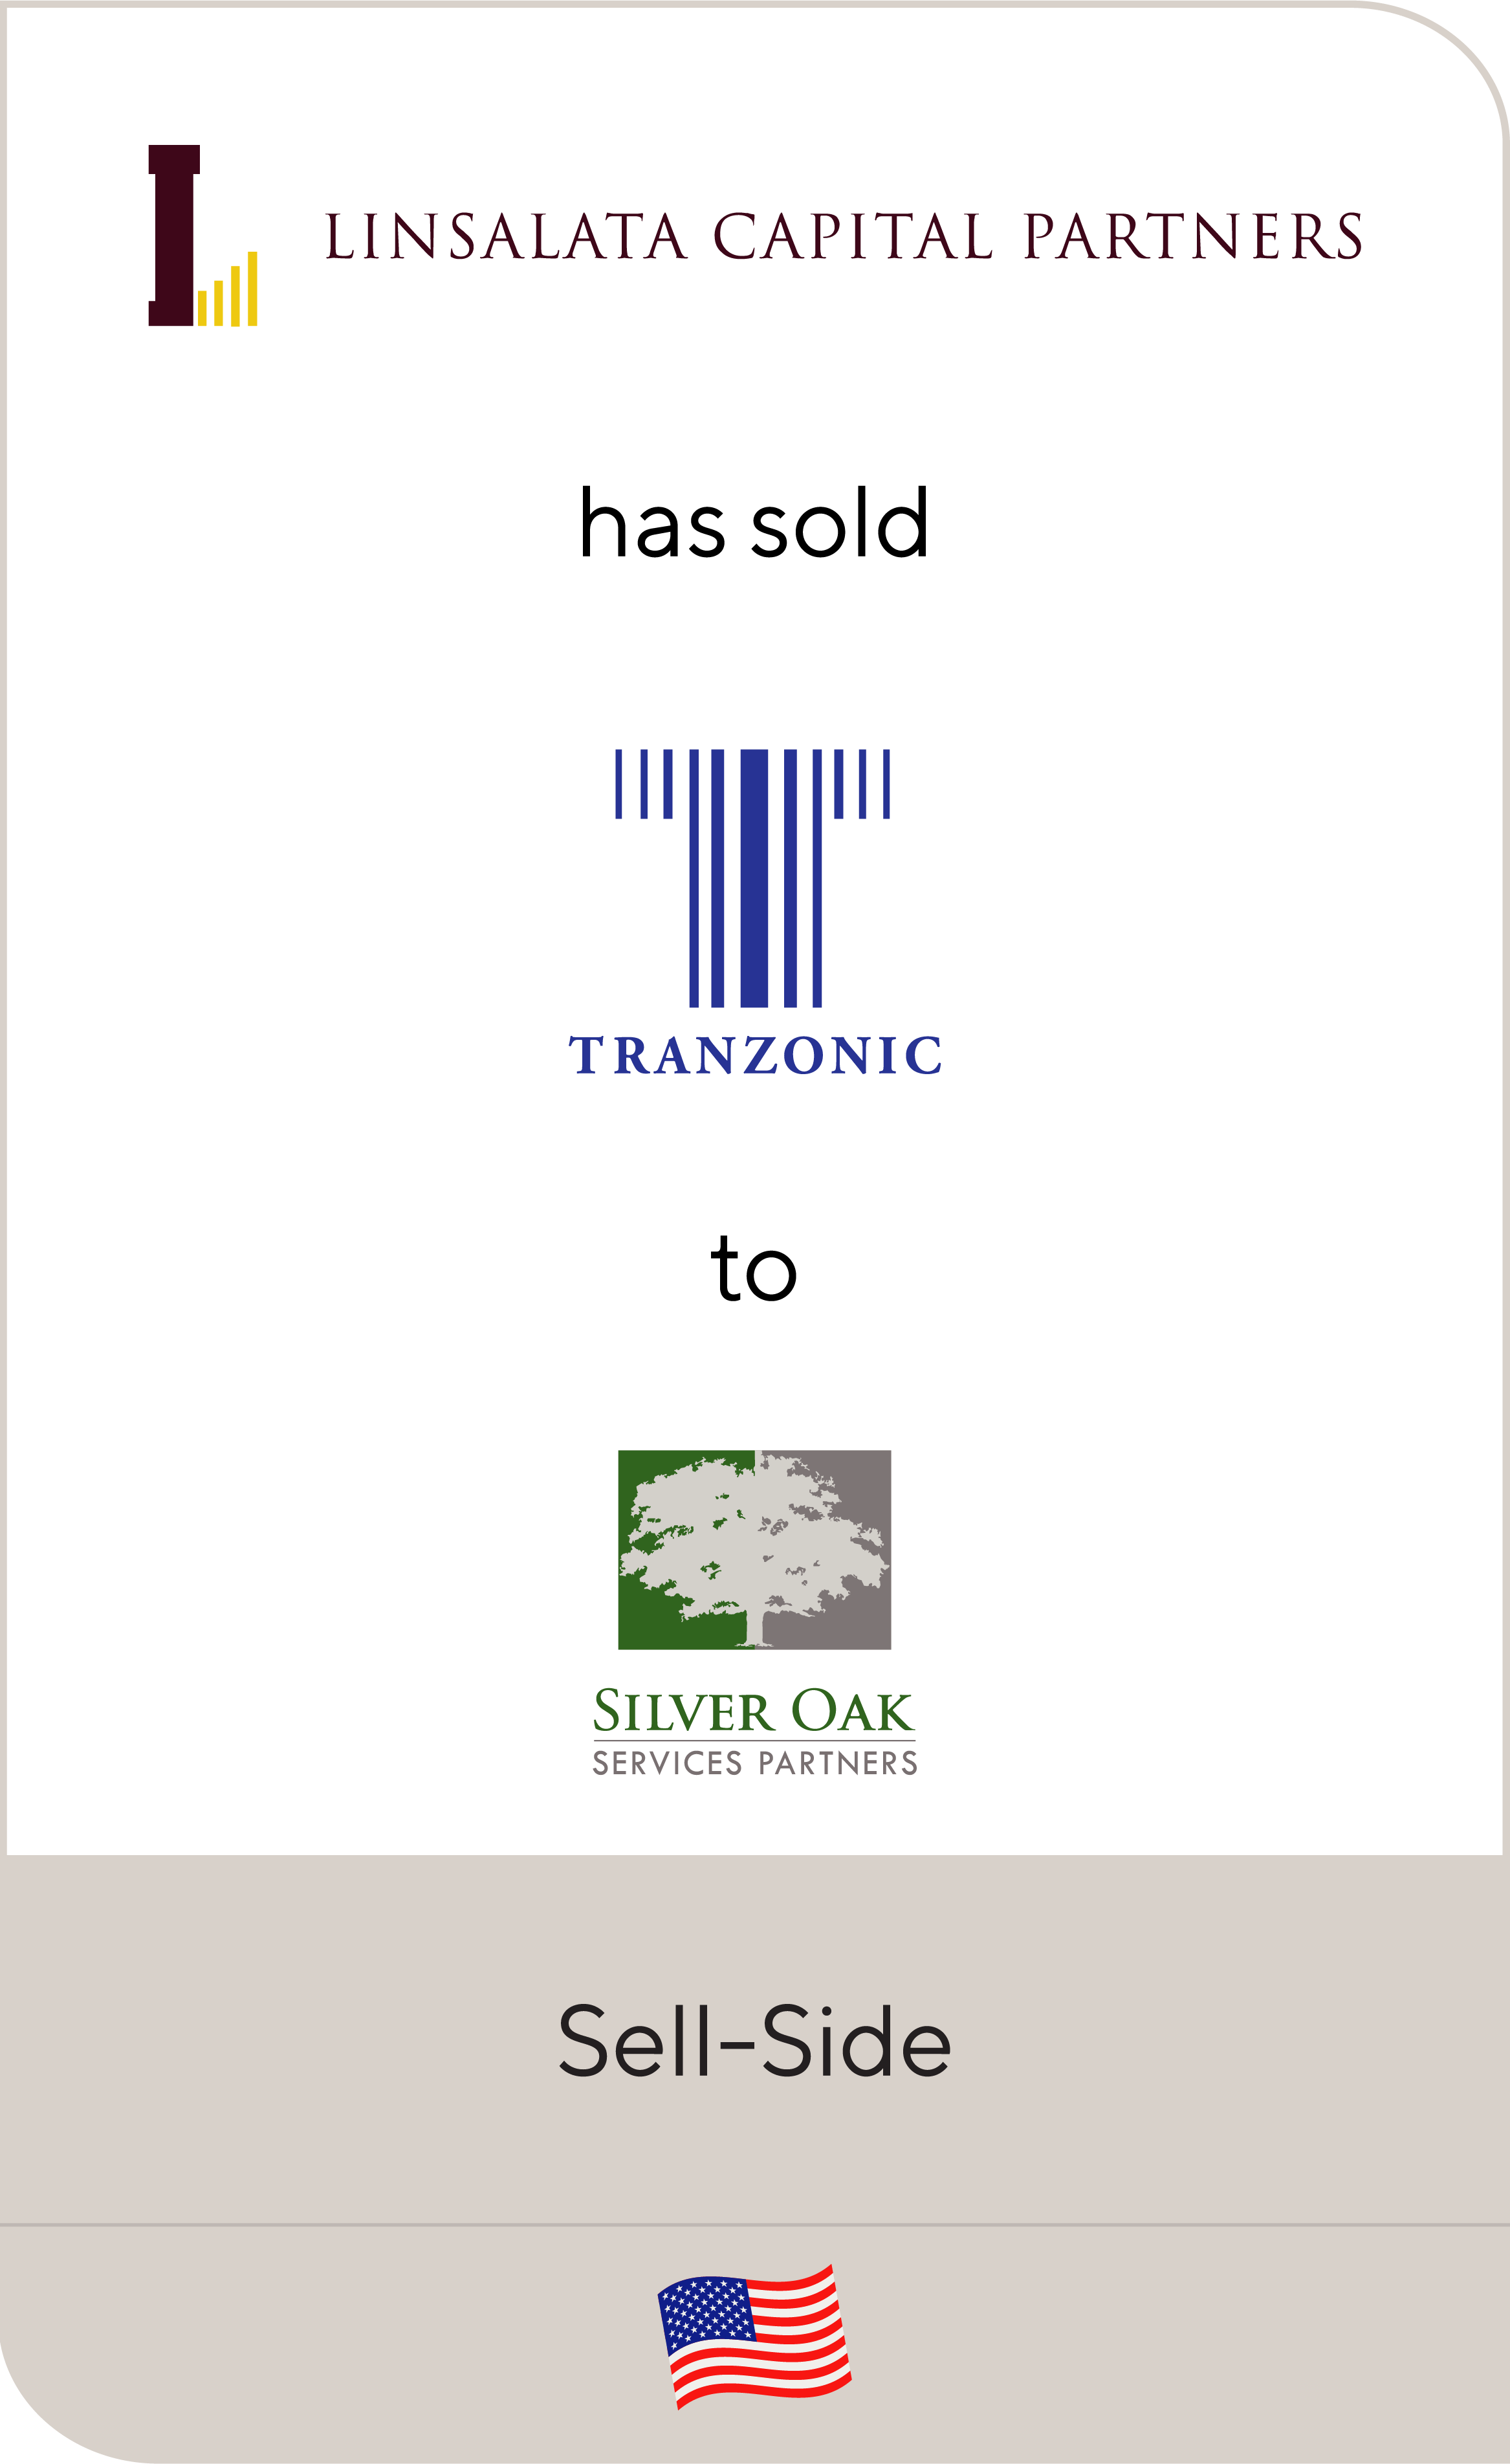 Linsalata Capital Partners has sold Tranzonic to Silver Oak Services Partners